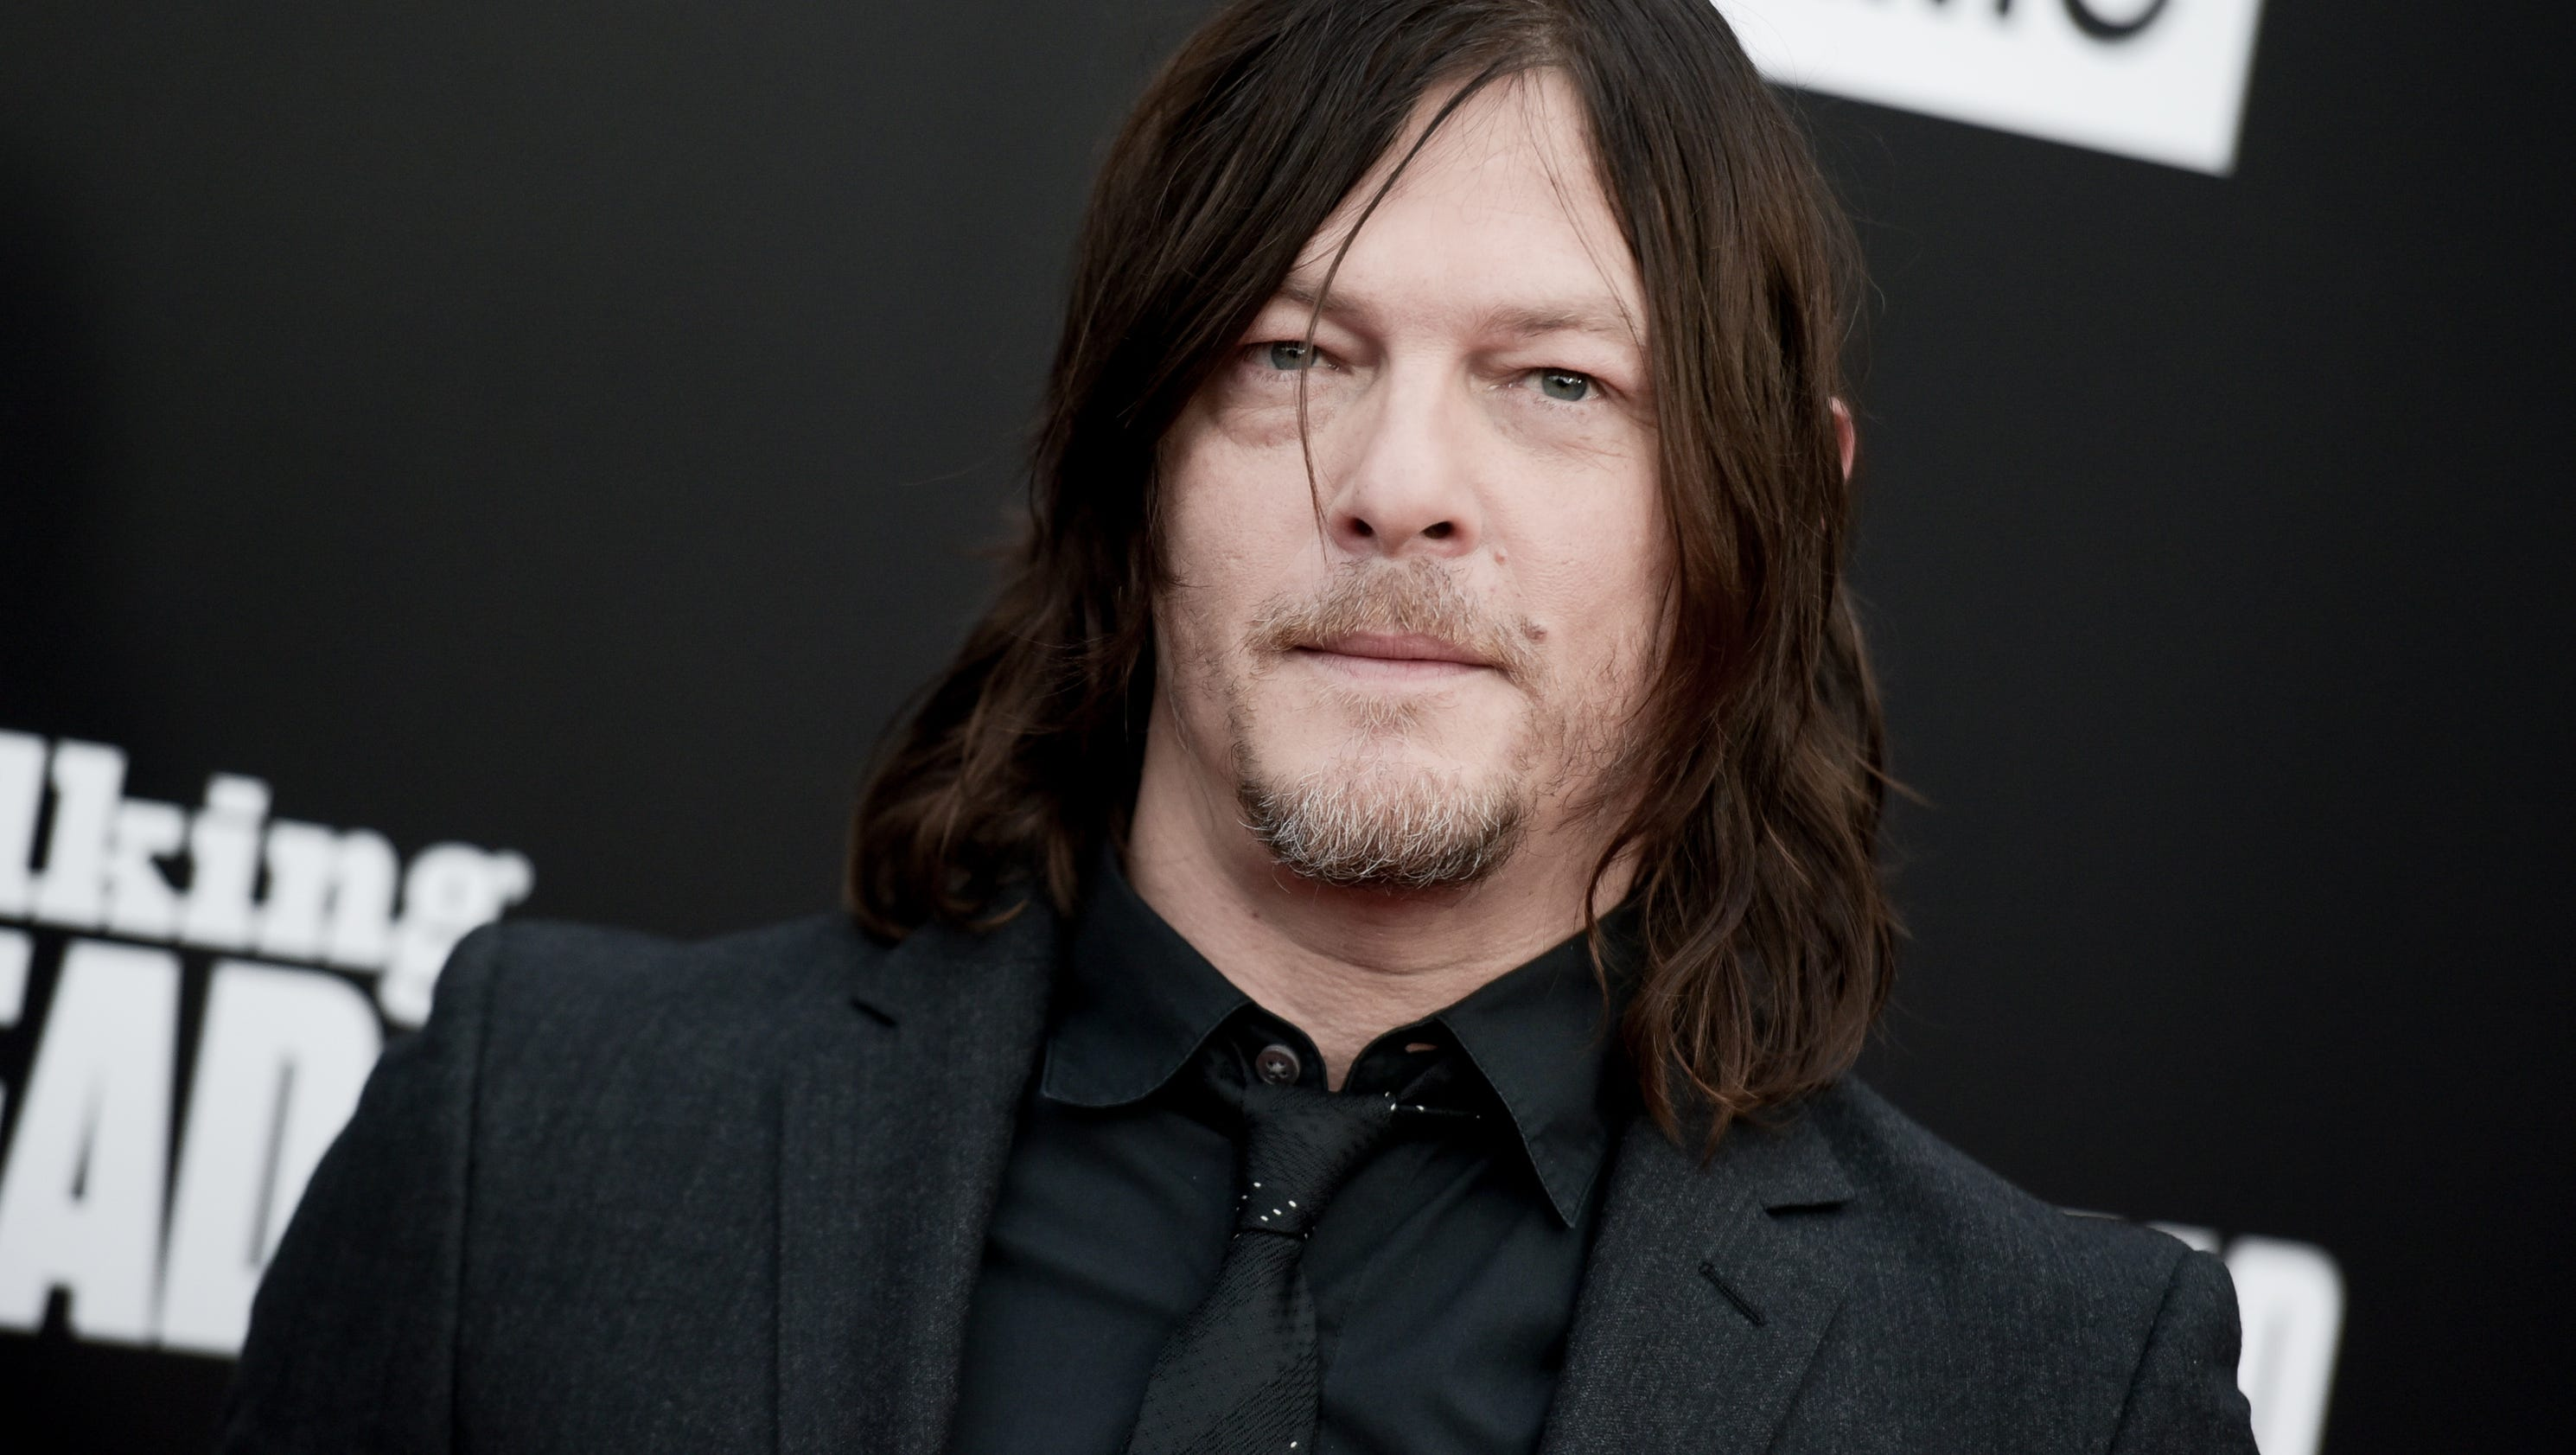 The Walking Dead Star Norman Reedus In Palm Springs